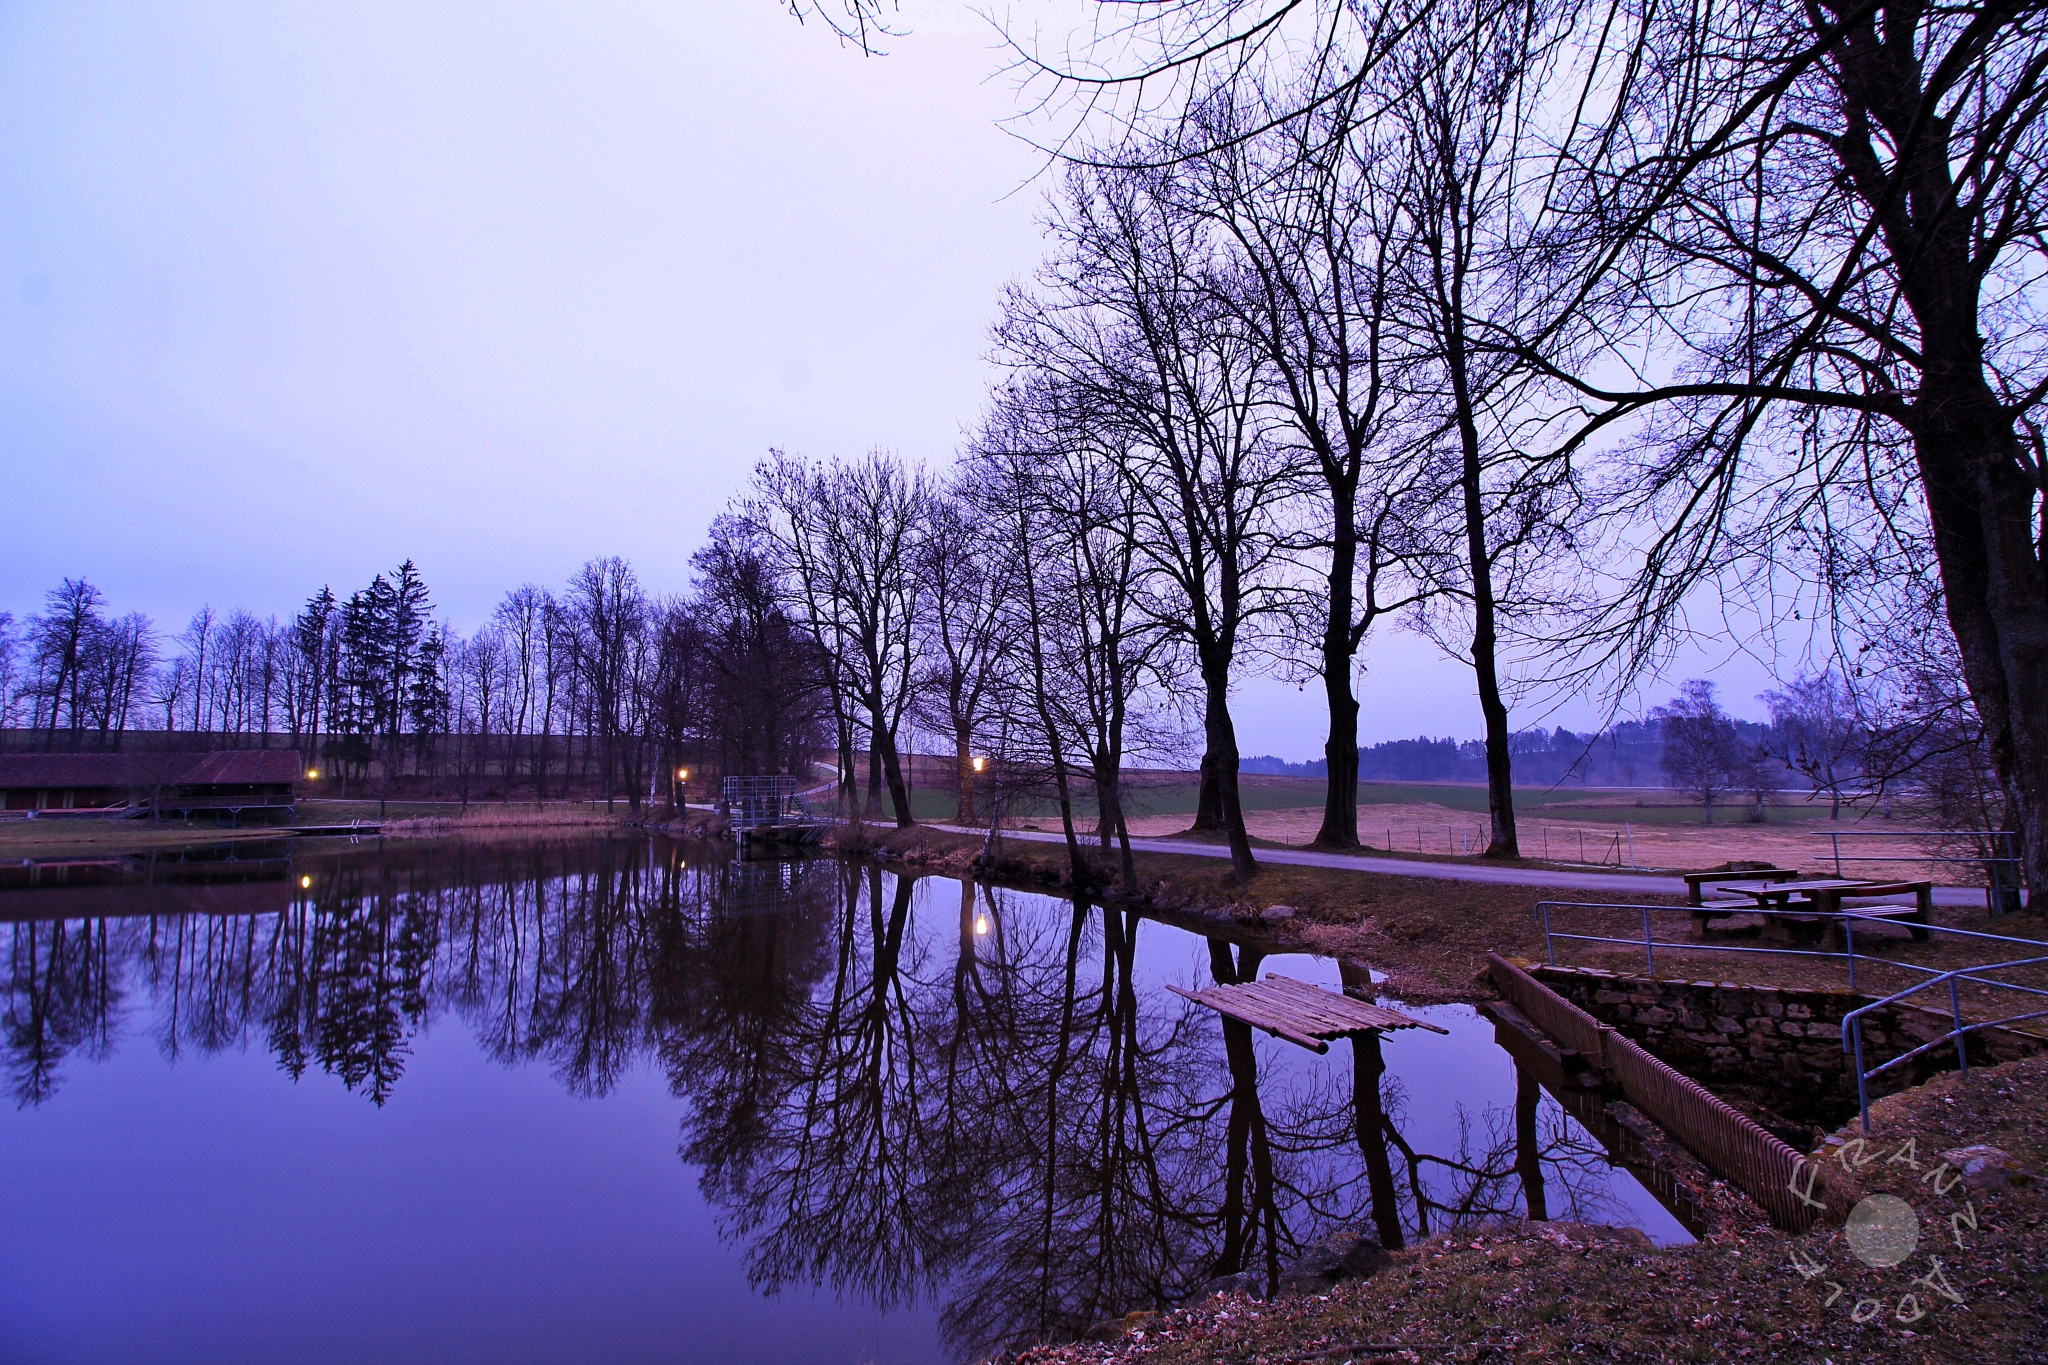 Beginning of the blue hour  by Franzl